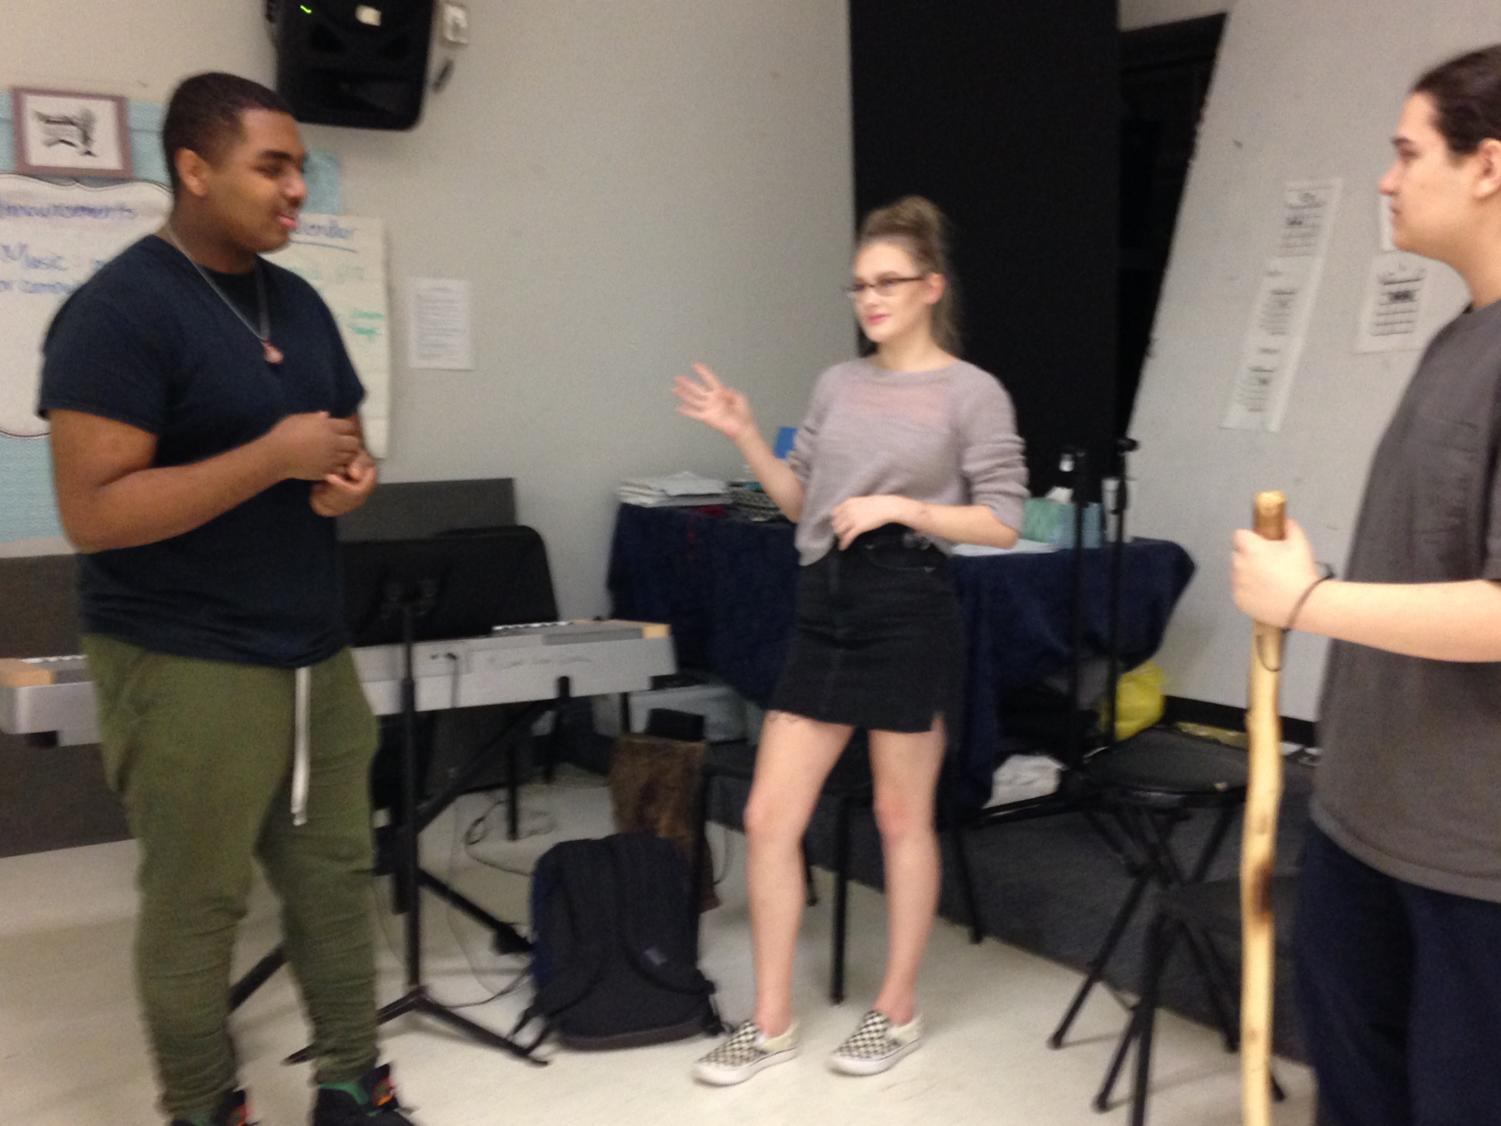 Practice Makes Perfect! Students practice the opening of We Are The Champions by Queen. The group is led by Nicholas Barrett and the other two students are sophomore Hollie Stephanie Dawnball and senior Nicholas Thomas.